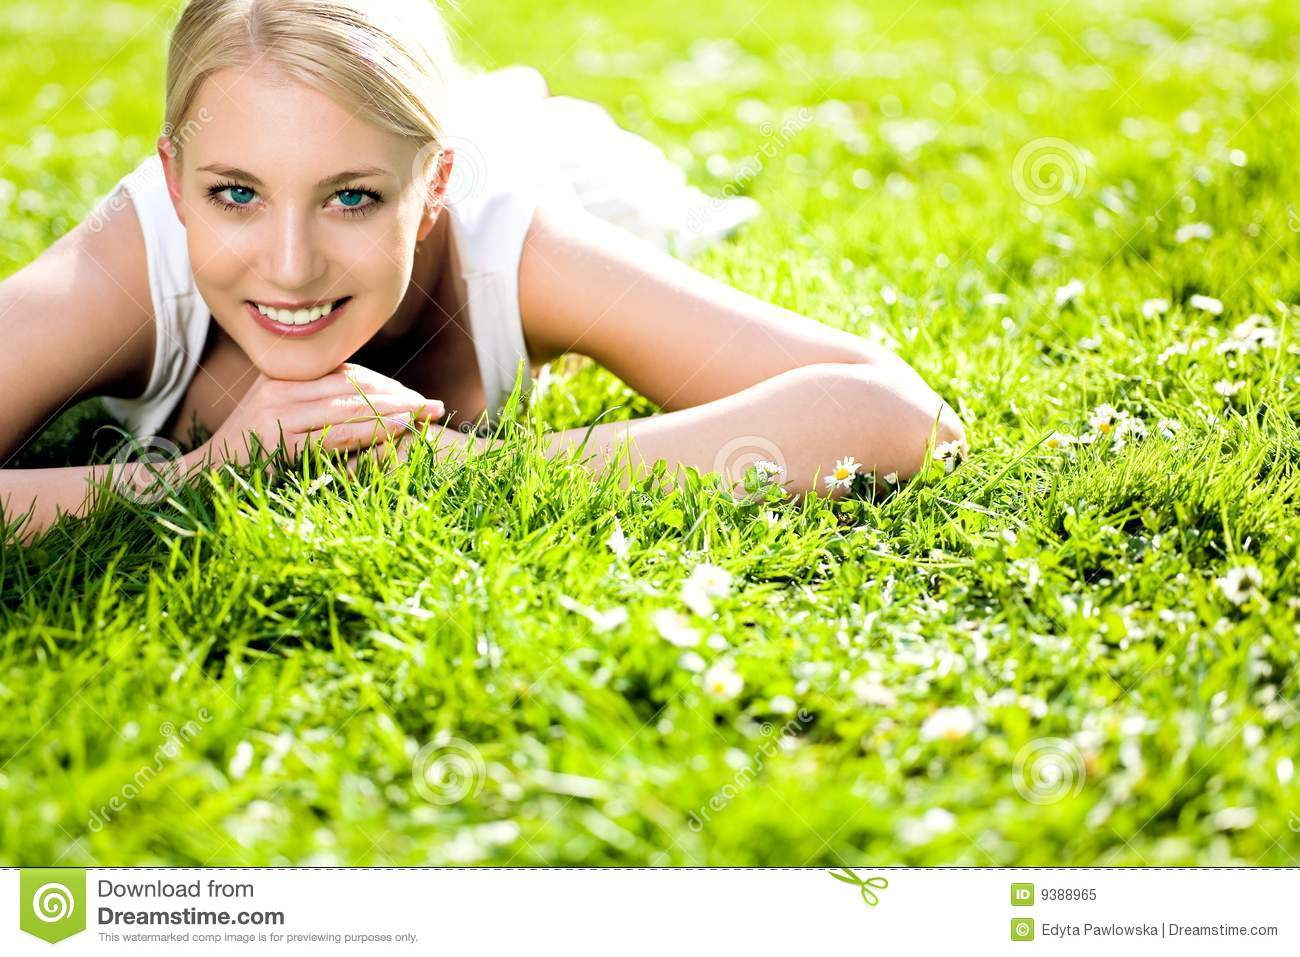 Stock Photo of Young nude woman curled up in tall grass